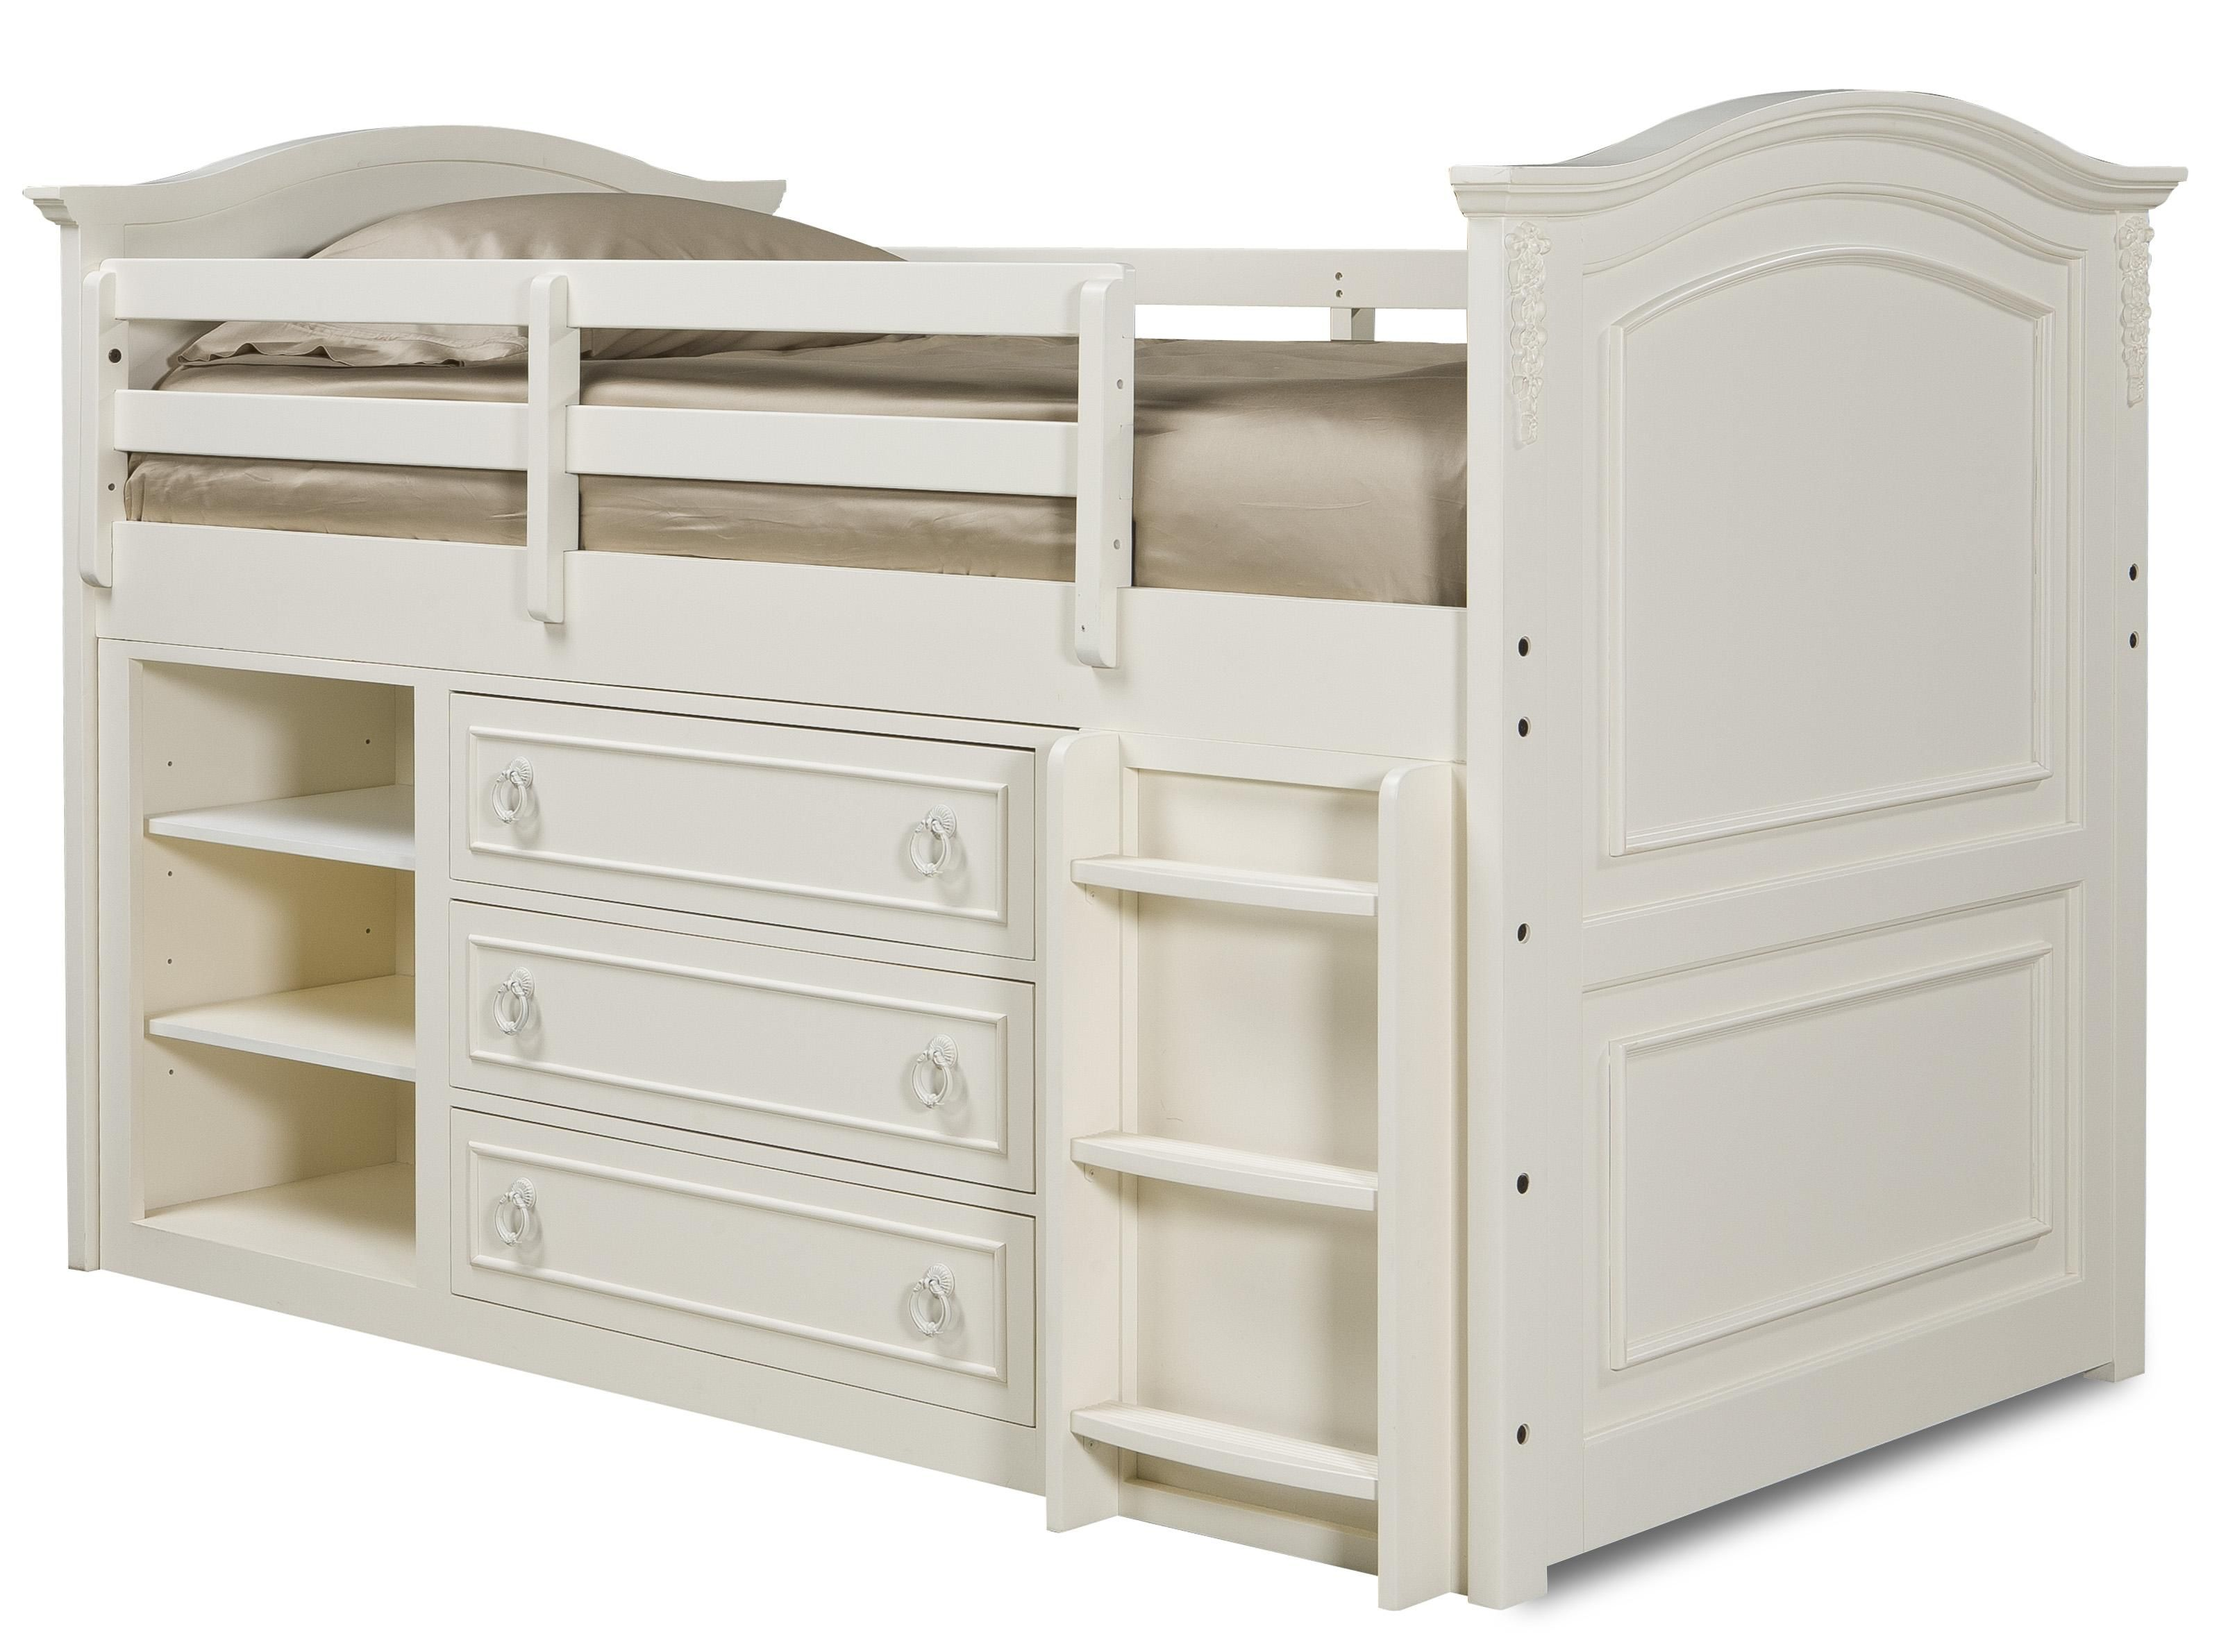 Enchantment Twin Size Mid Loft Bed With Dresser Storage And